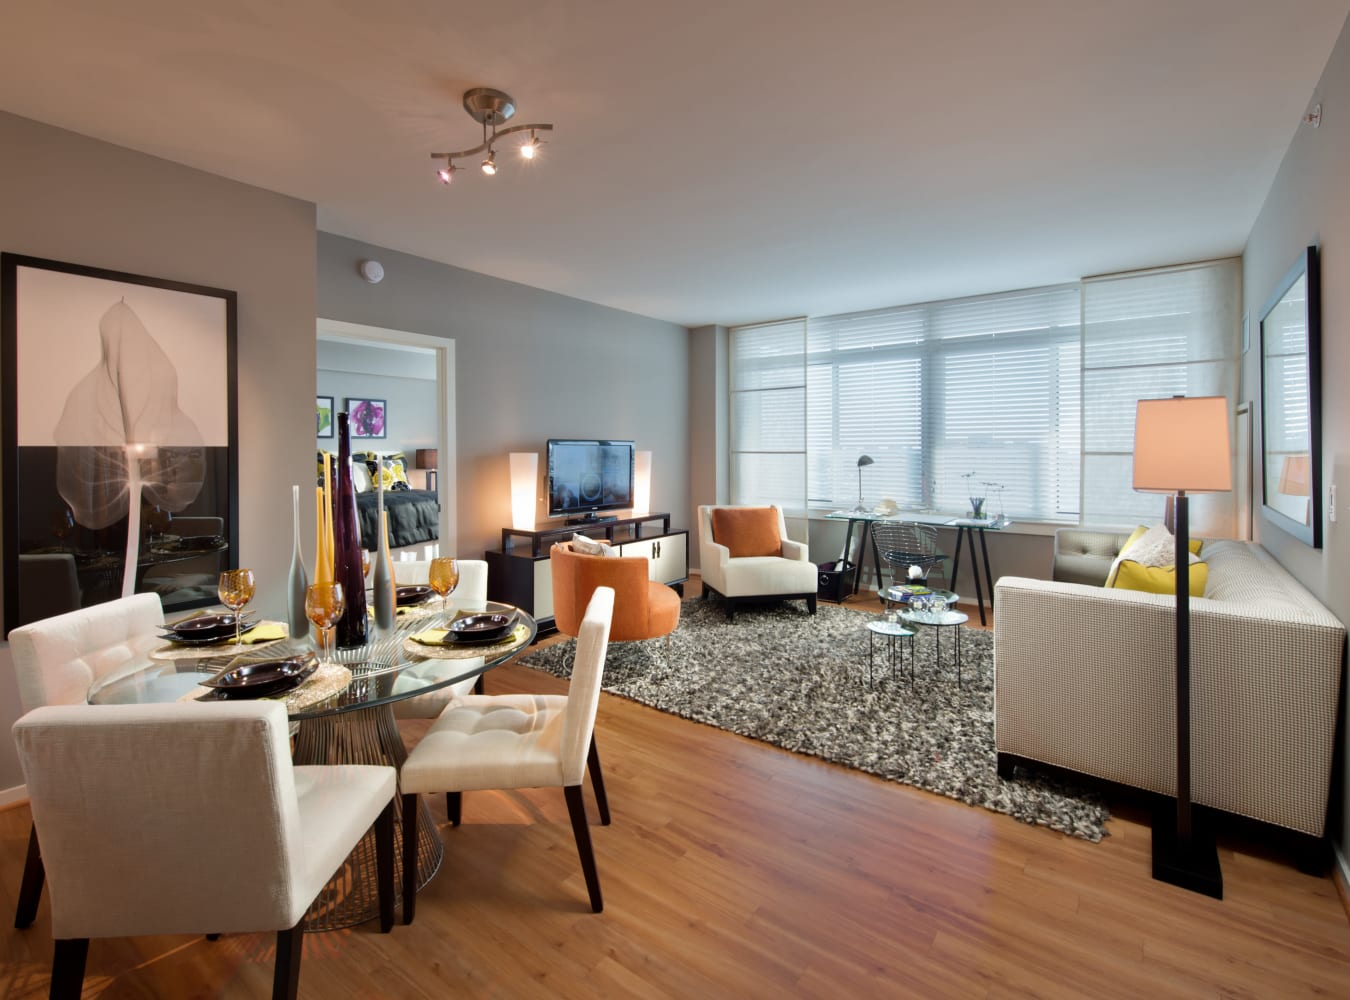 A spacious living room with wood-style flooring at Solaire 1150 Ripley in Silver Spring, Maryland